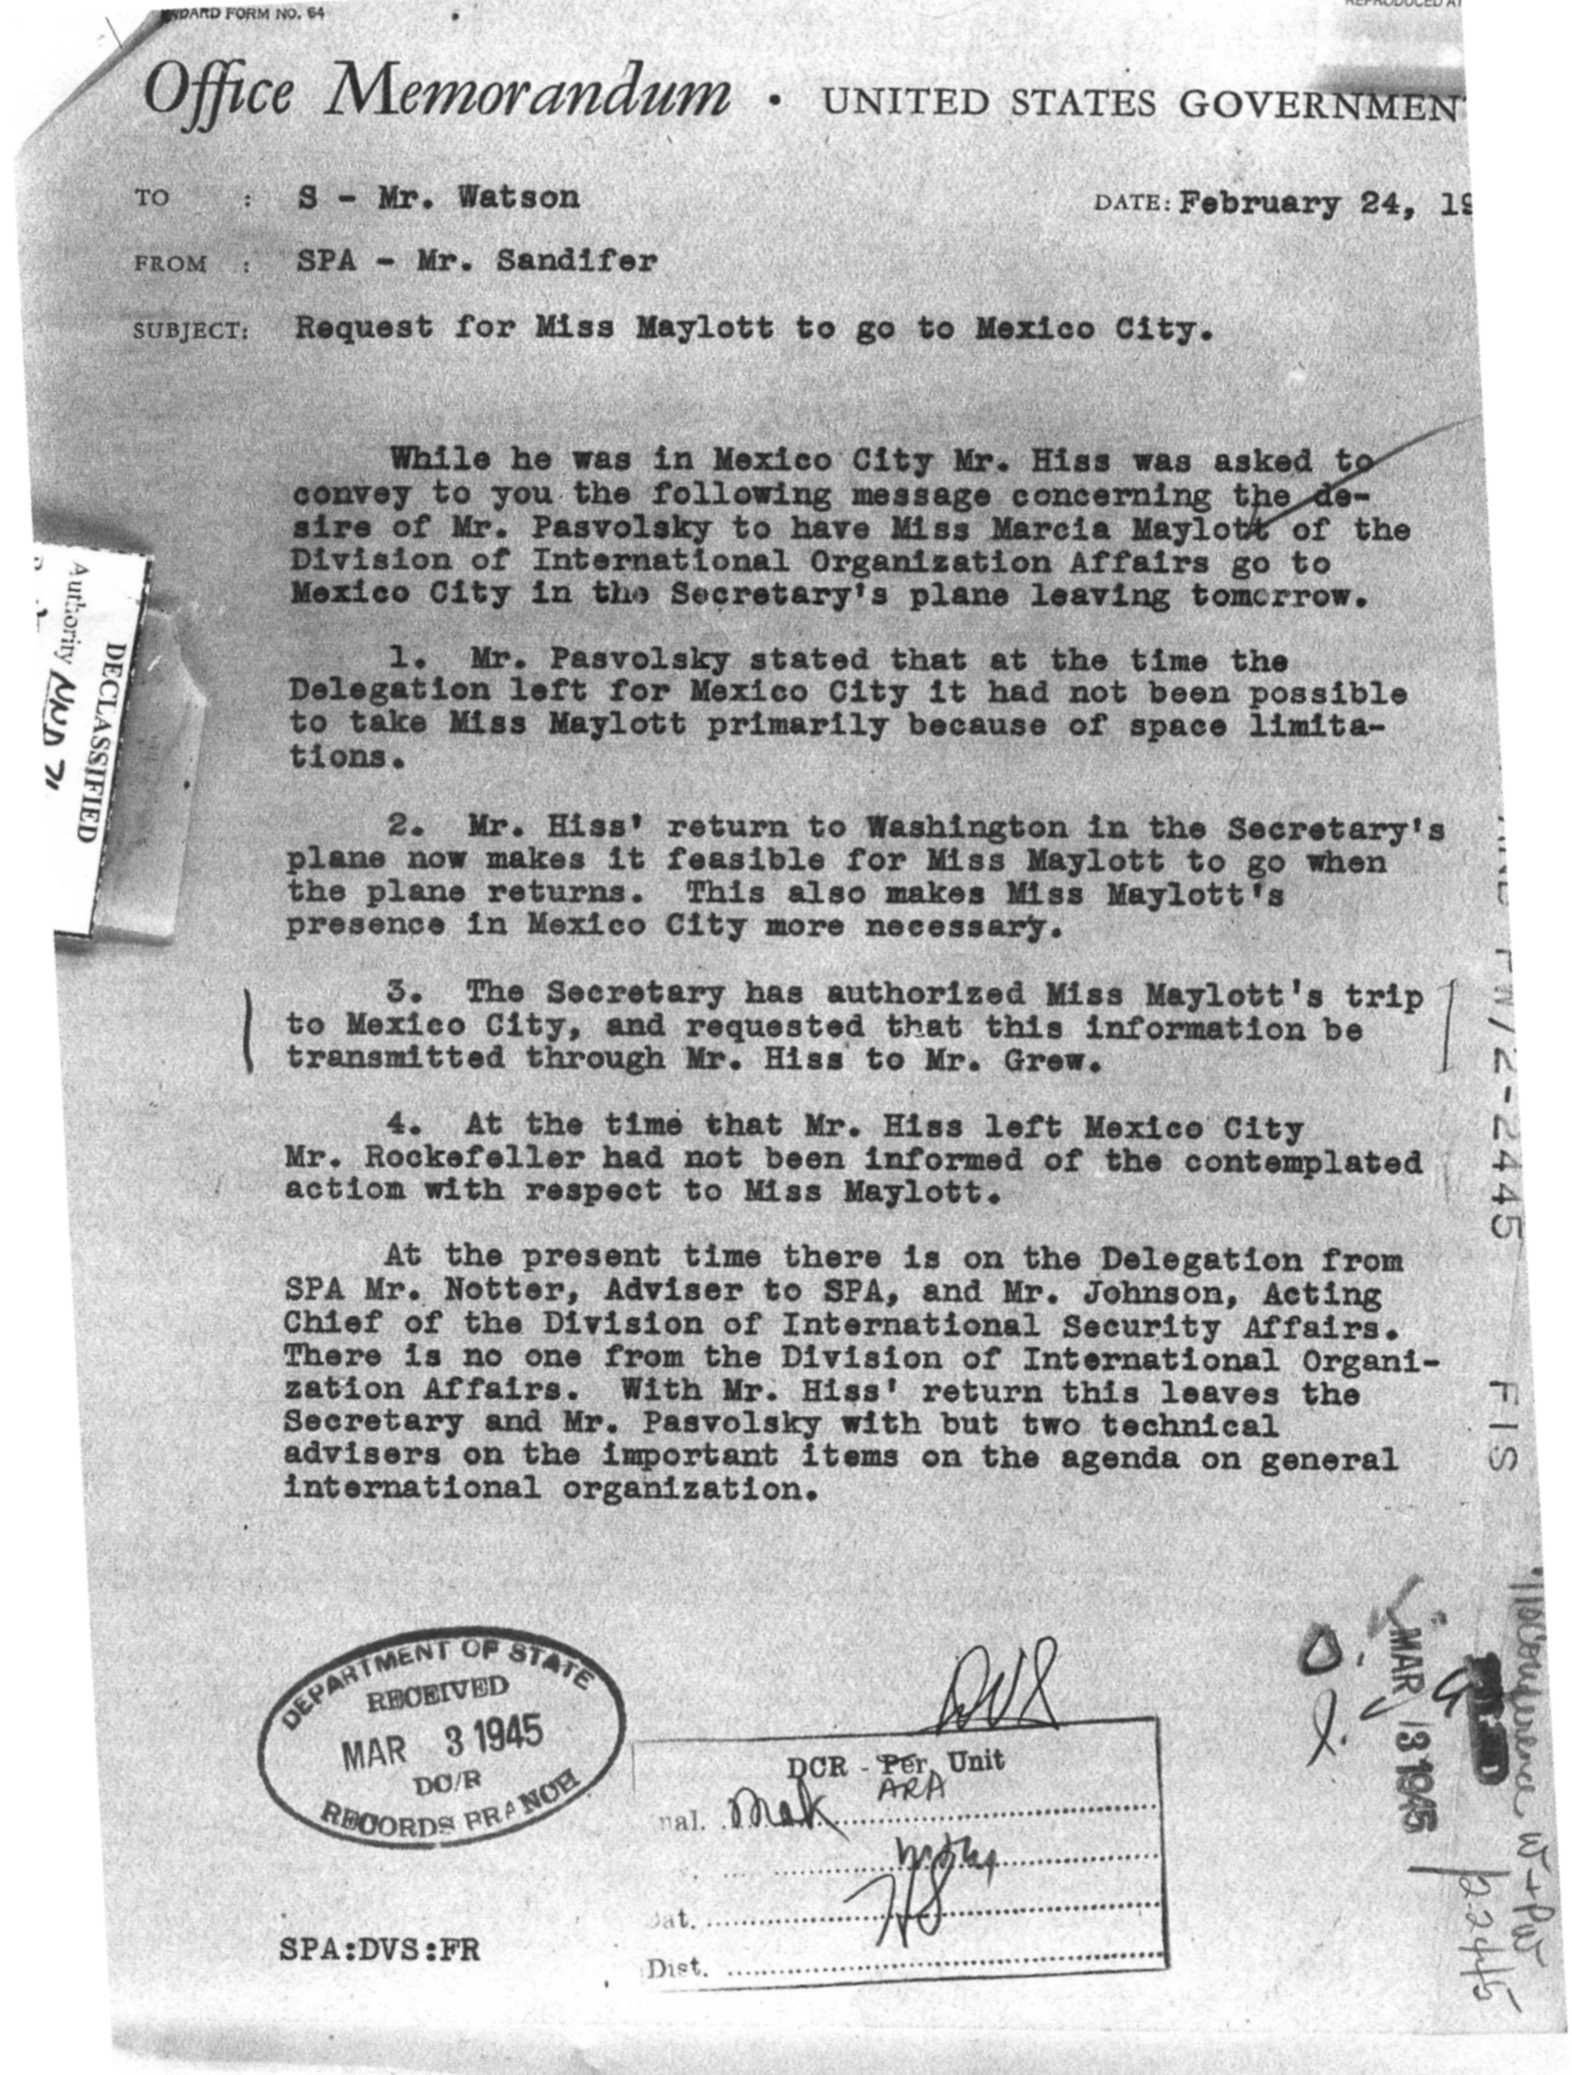 Memo re. Alger Hiss (larger)